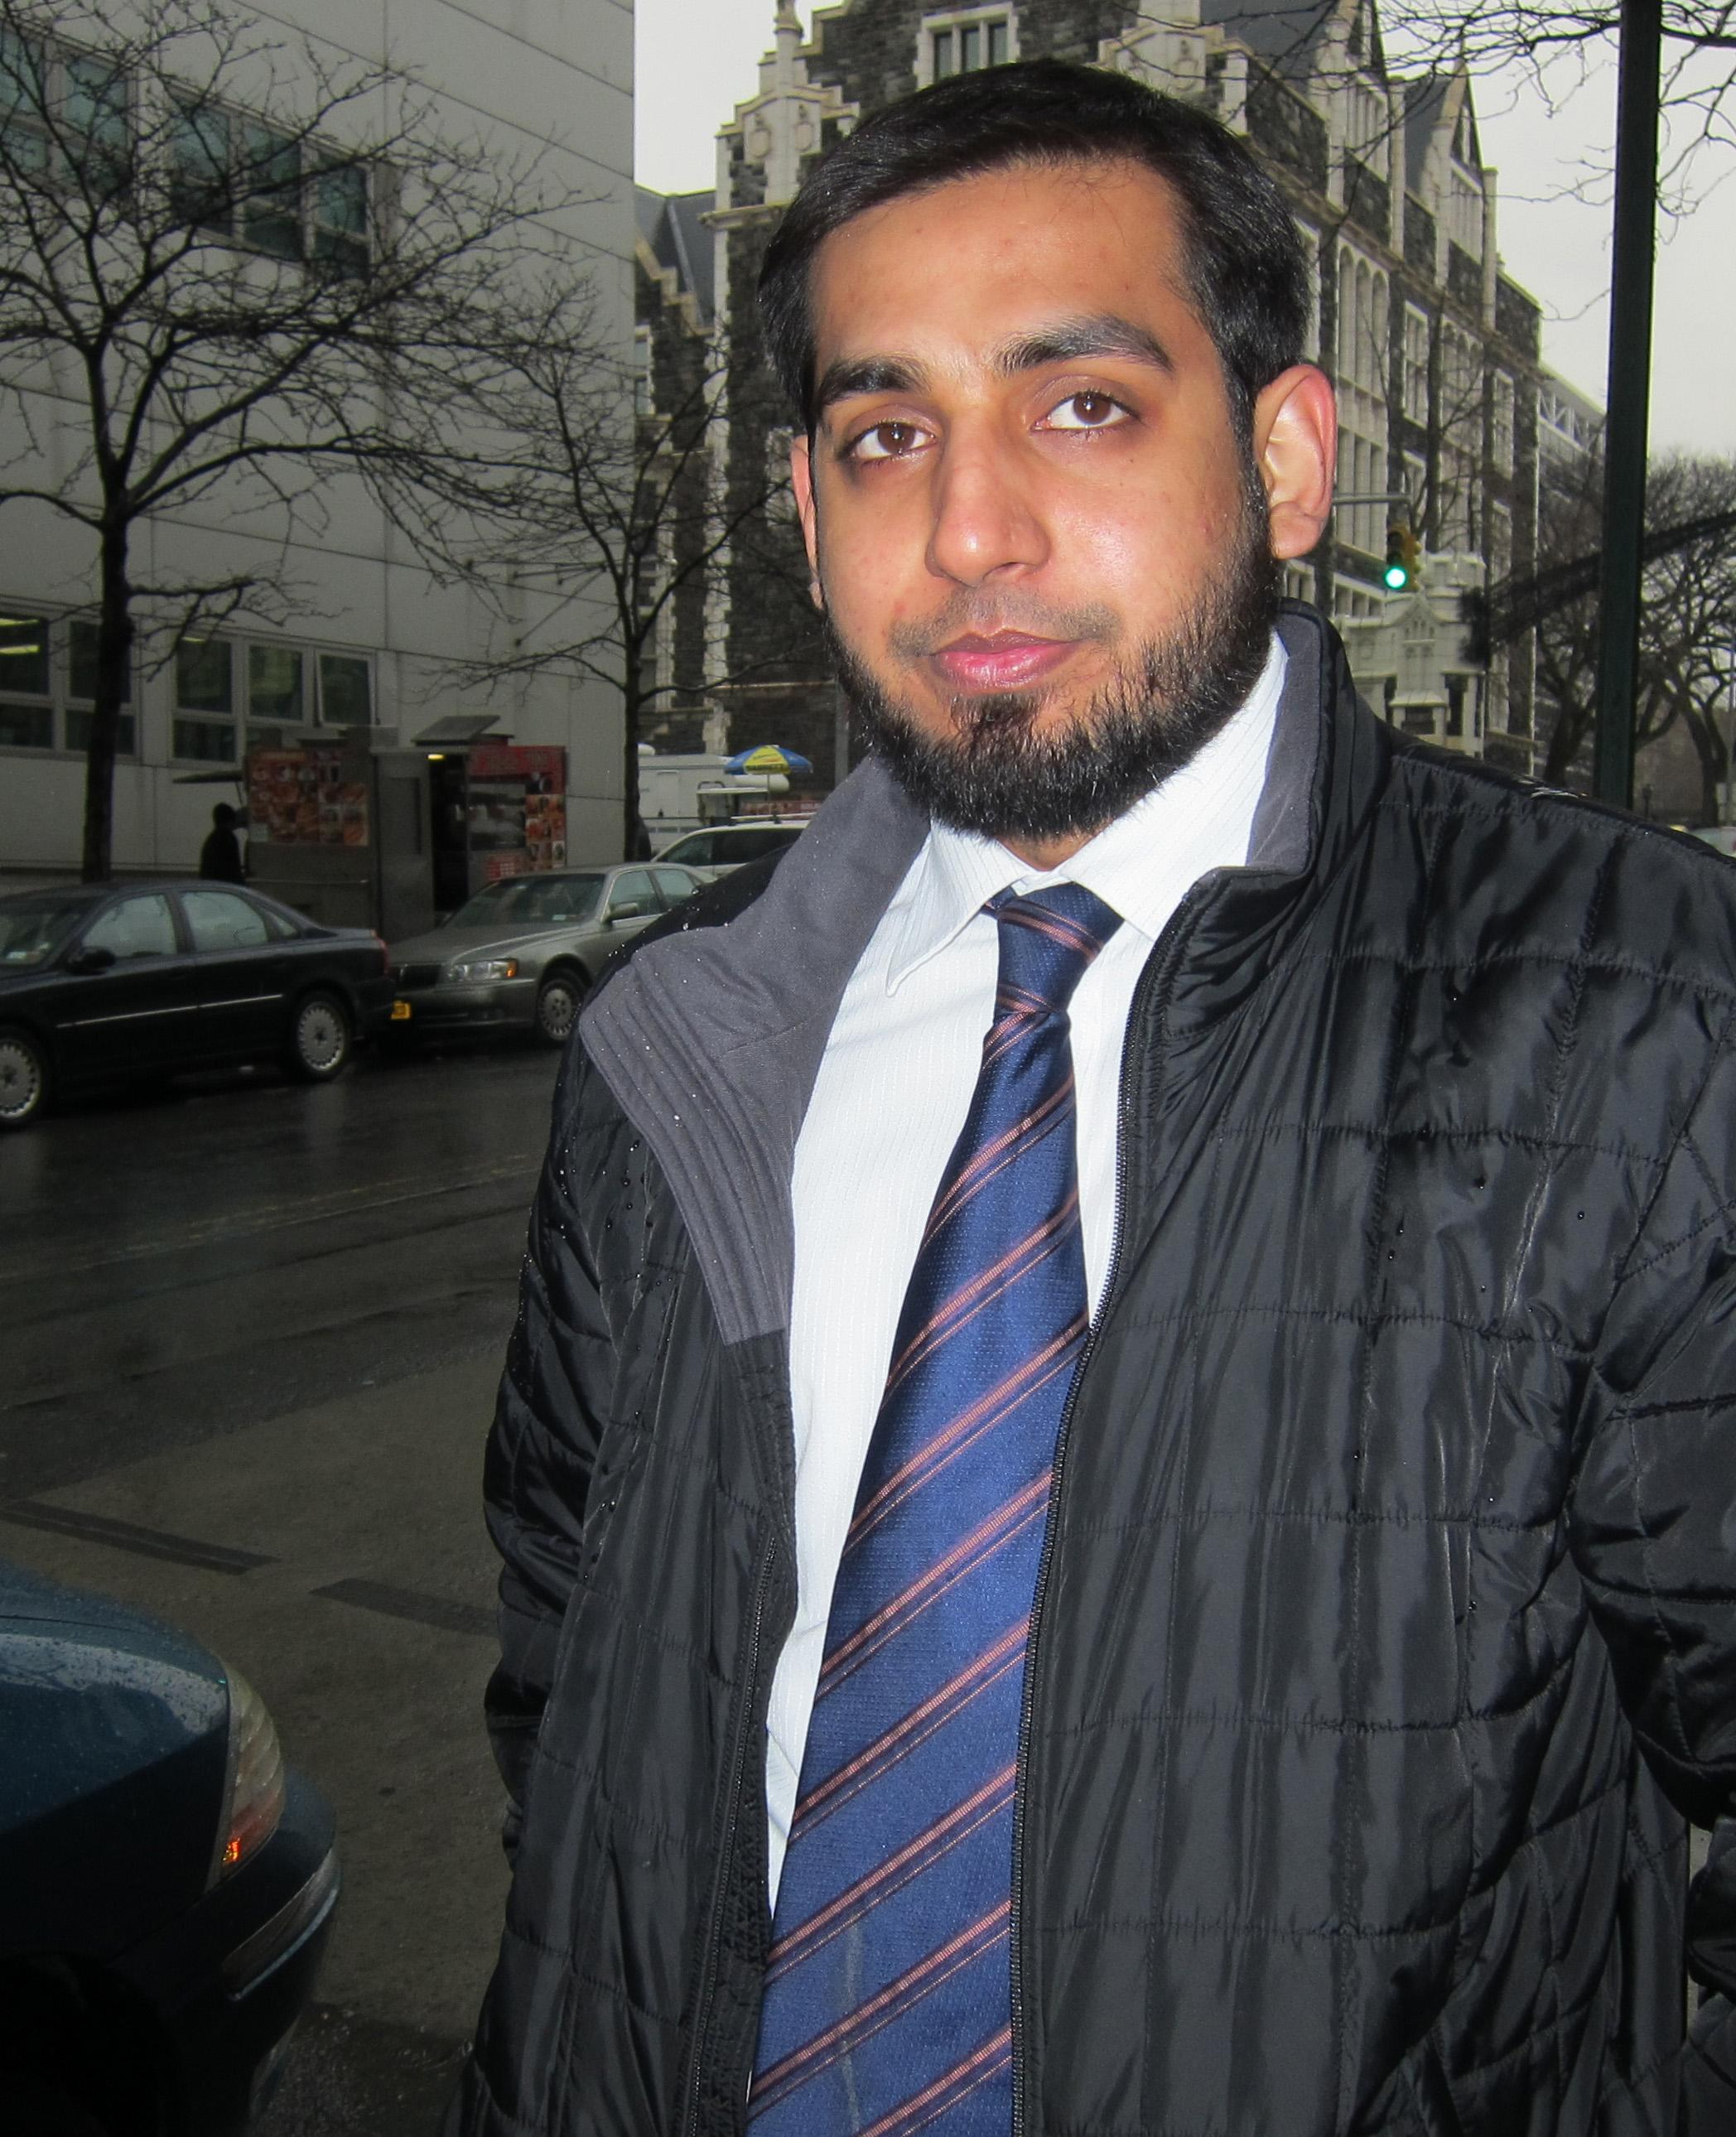 This Thursday, Feb. 16, 2012 photo shows Jawad Rasul near the City College of New York where he is a student. Rasul's name ended up in a New York Police Department report after an undercover officer accompanied him and other Muslim students on a whitewater rafting trip in upstate New York. The New York Police Department monitored Muslim college students far more broadly than previously known, at schools far beyond the city limits, including the Ivy League colleges of Yale and the University of Pennsylvania, The Associated Press has learned. (AP Photo/Ted Shaffrey)